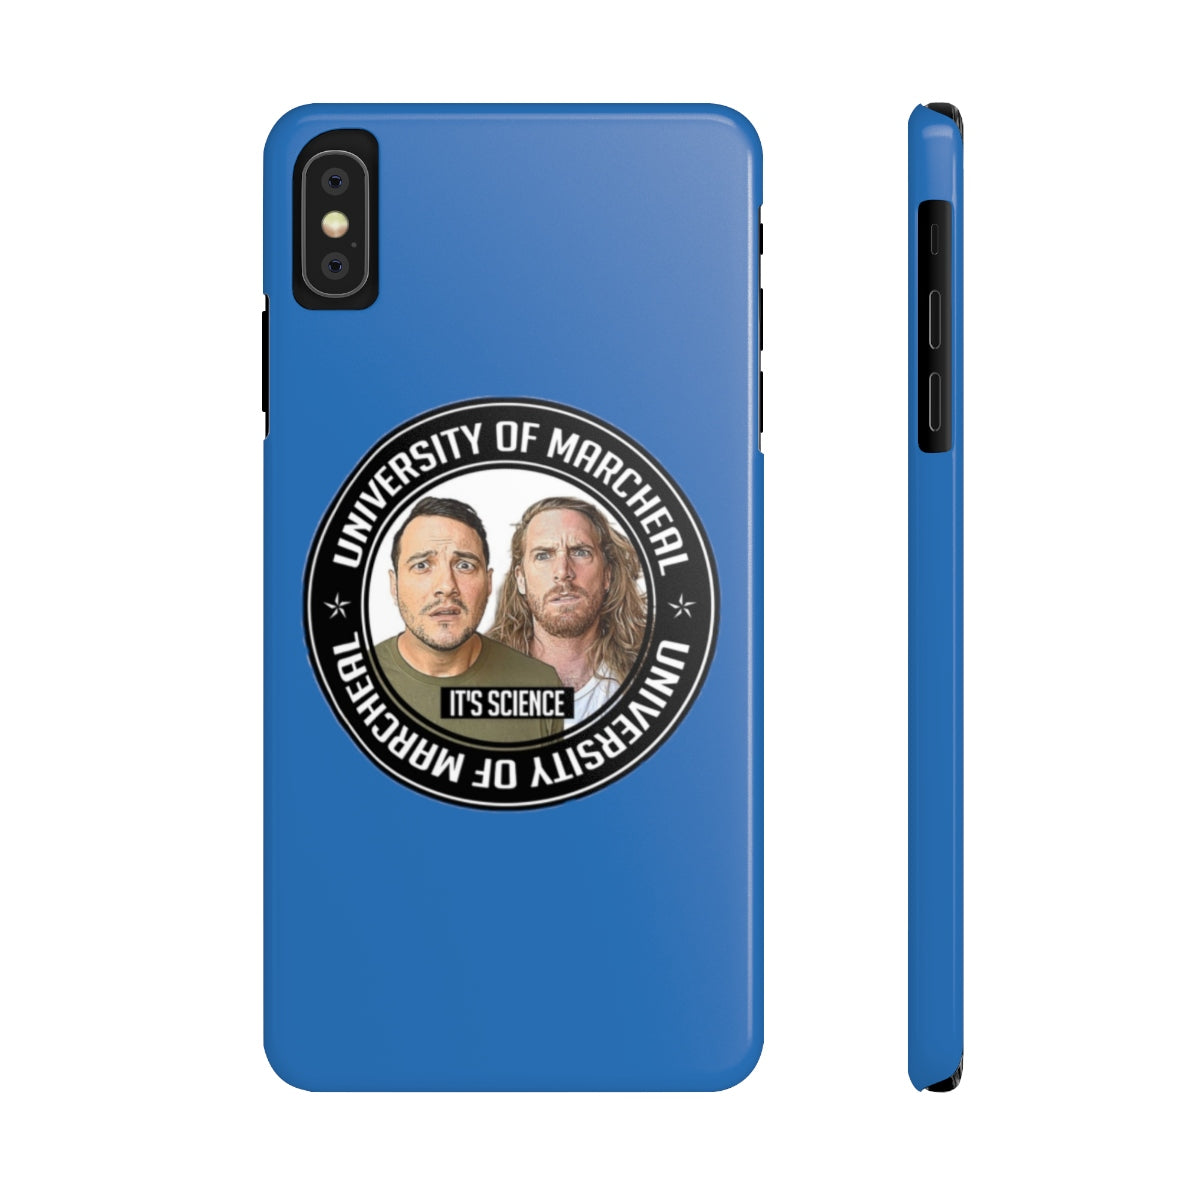 PHONE CASE - ROYAL BLUE (iPhone X, 5 and Samsung S9, S5)